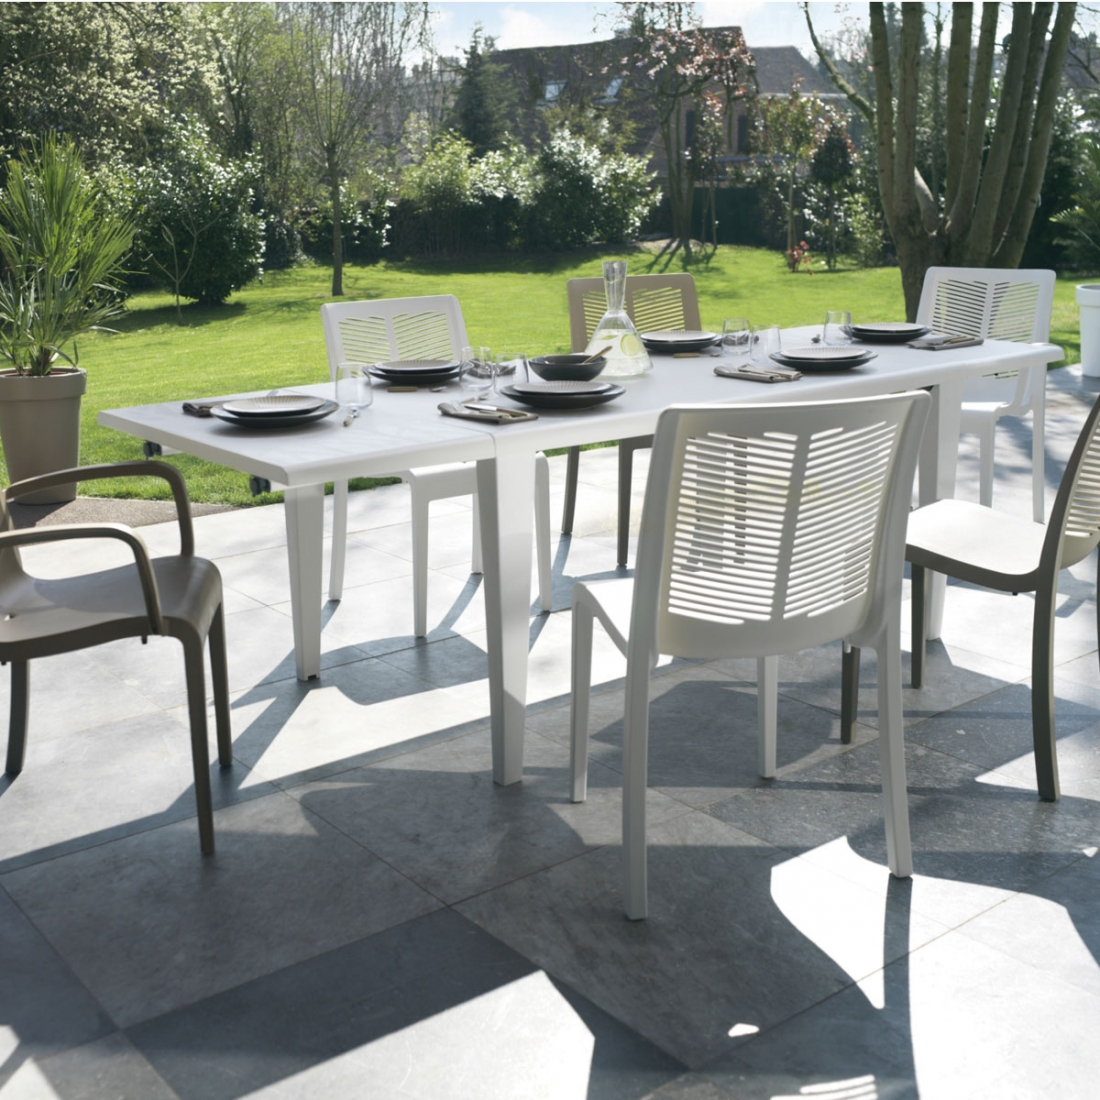 Table de terrasse alpha 240 grosfillex zendart design - Table jardin grofilex besancon ...